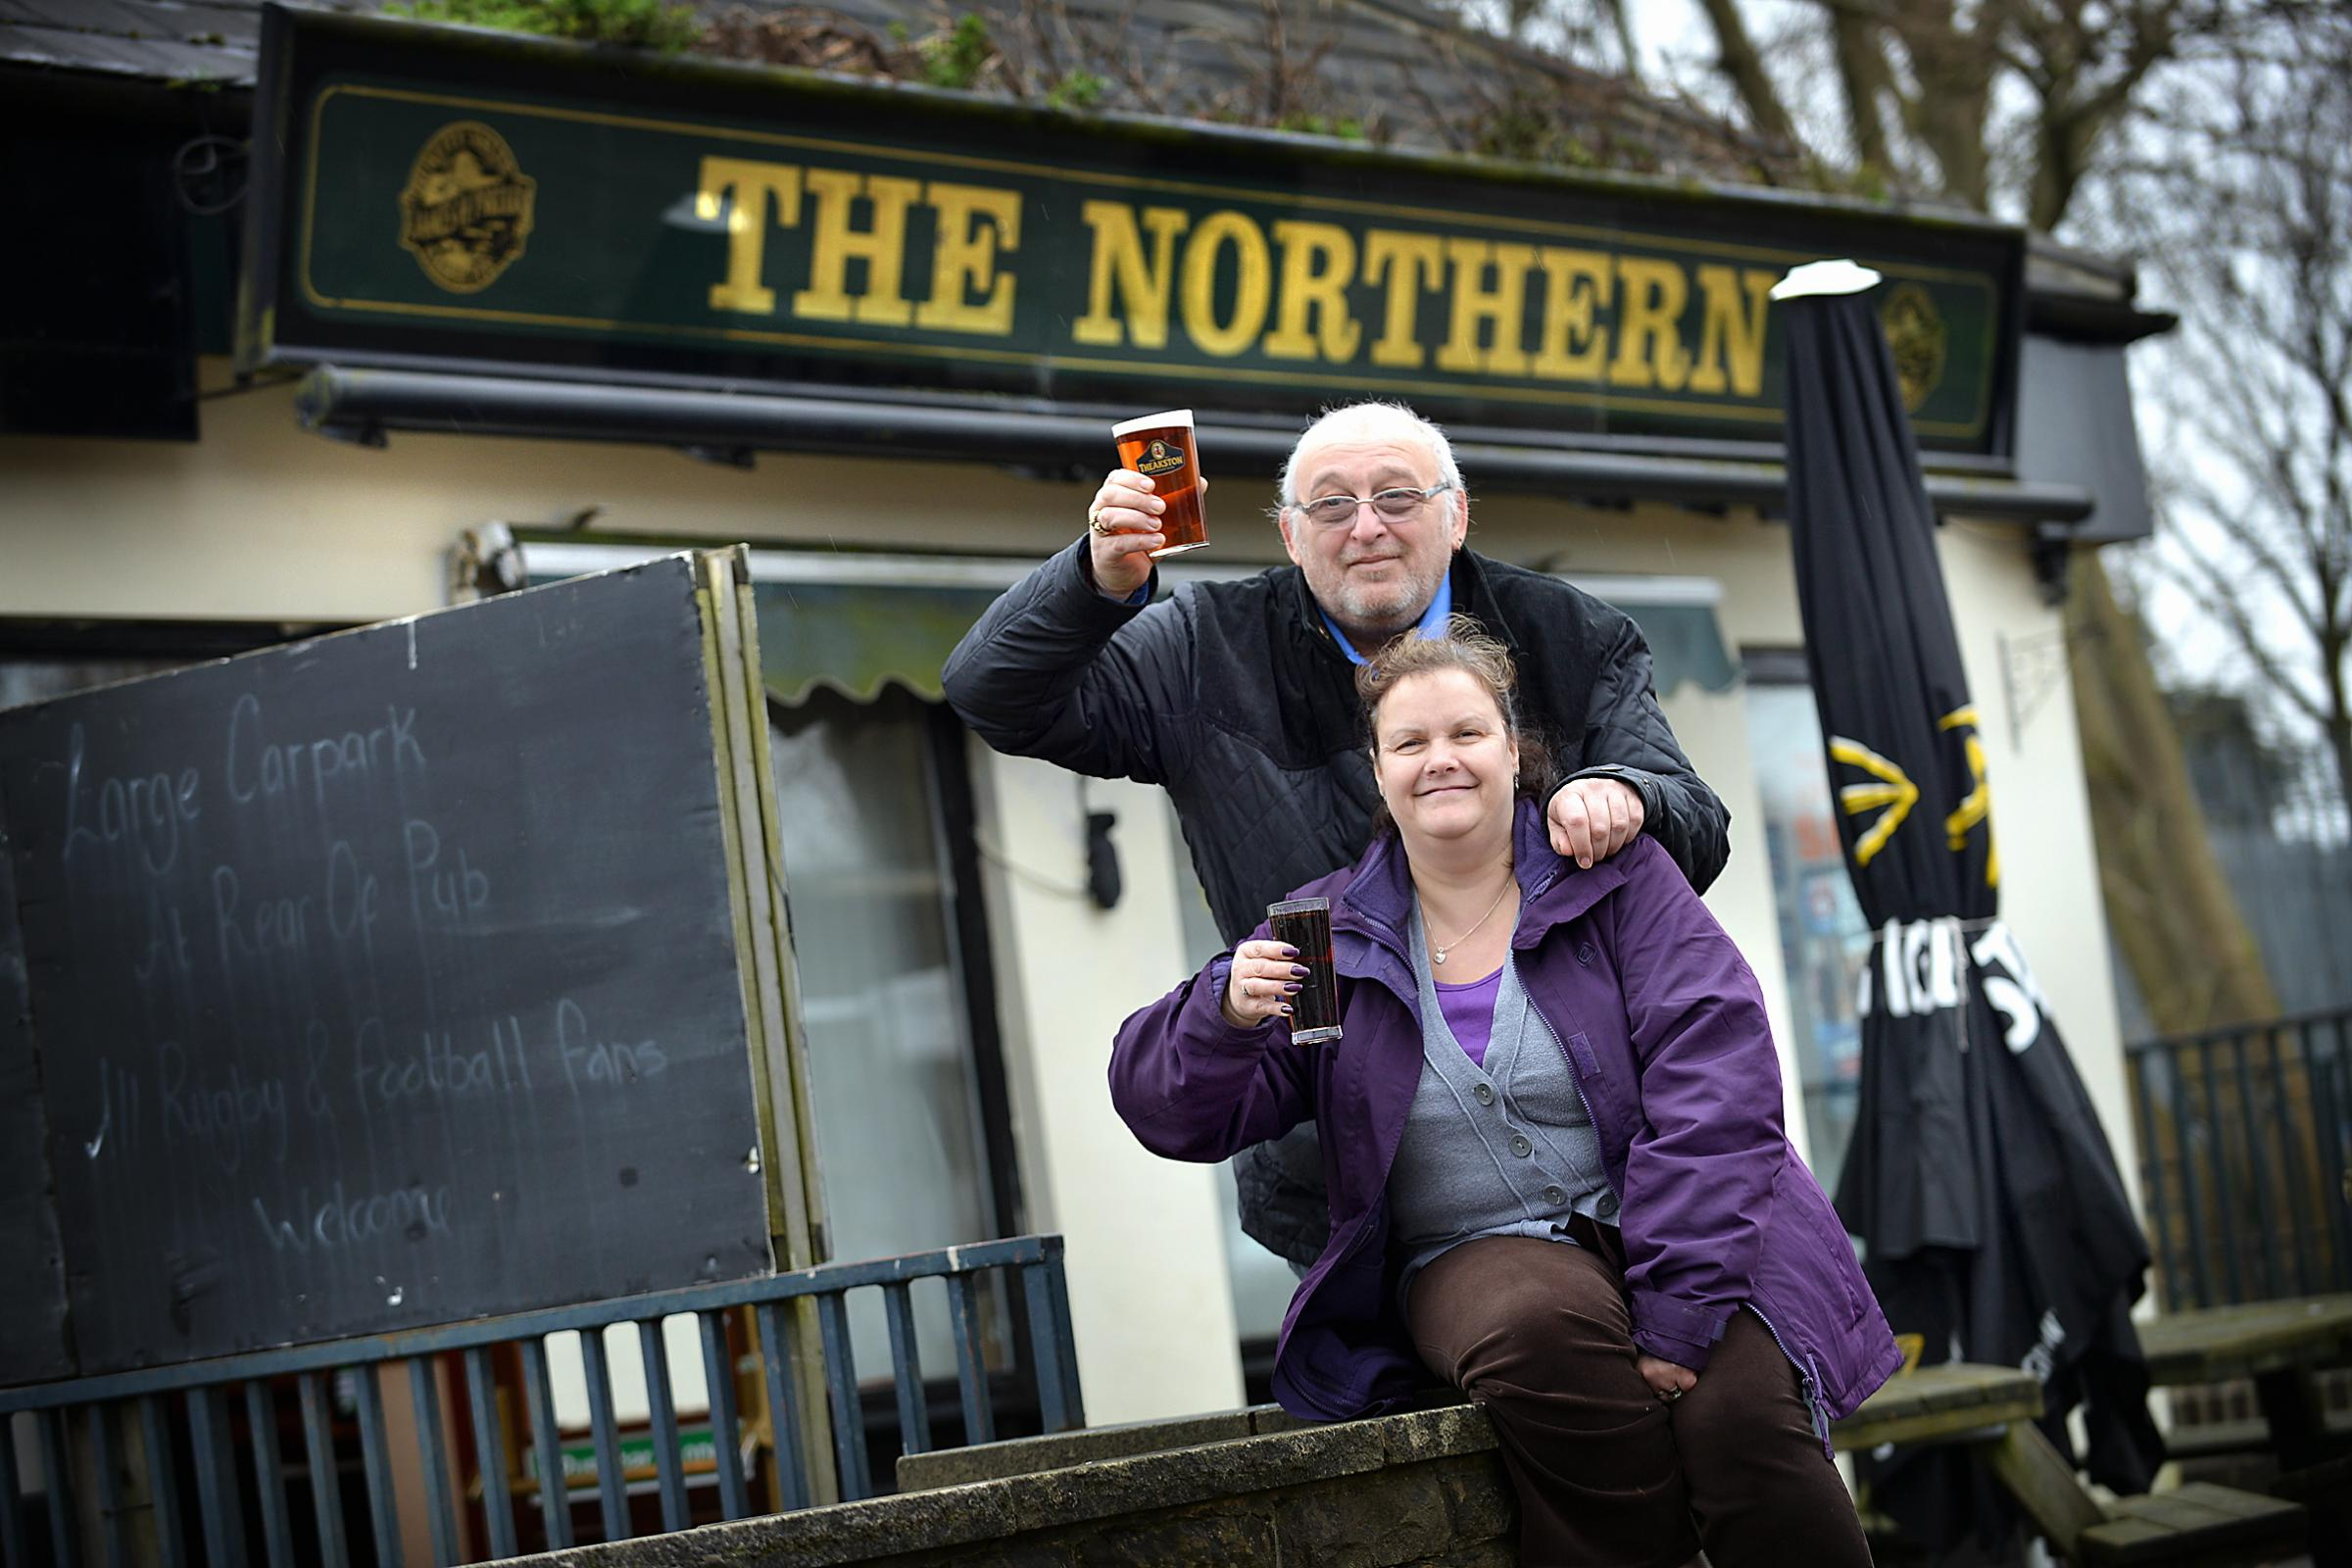 Landlady Frances Spencer and her husband Lloyd outside The Northern pub on Halifax Roa